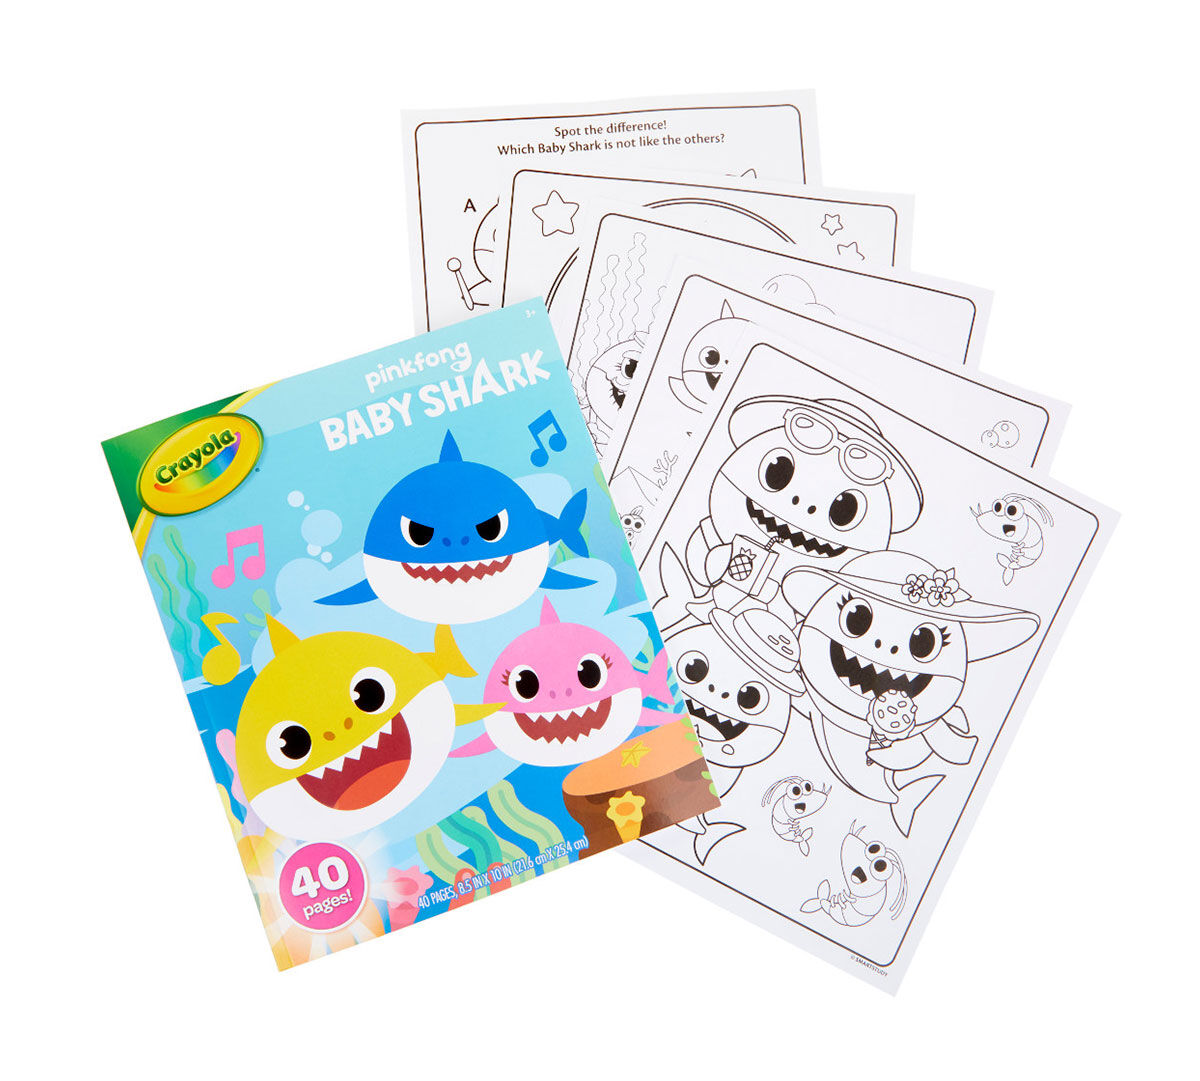 Baby Shark Coloring Book 40 Coloring Pages Crayola com